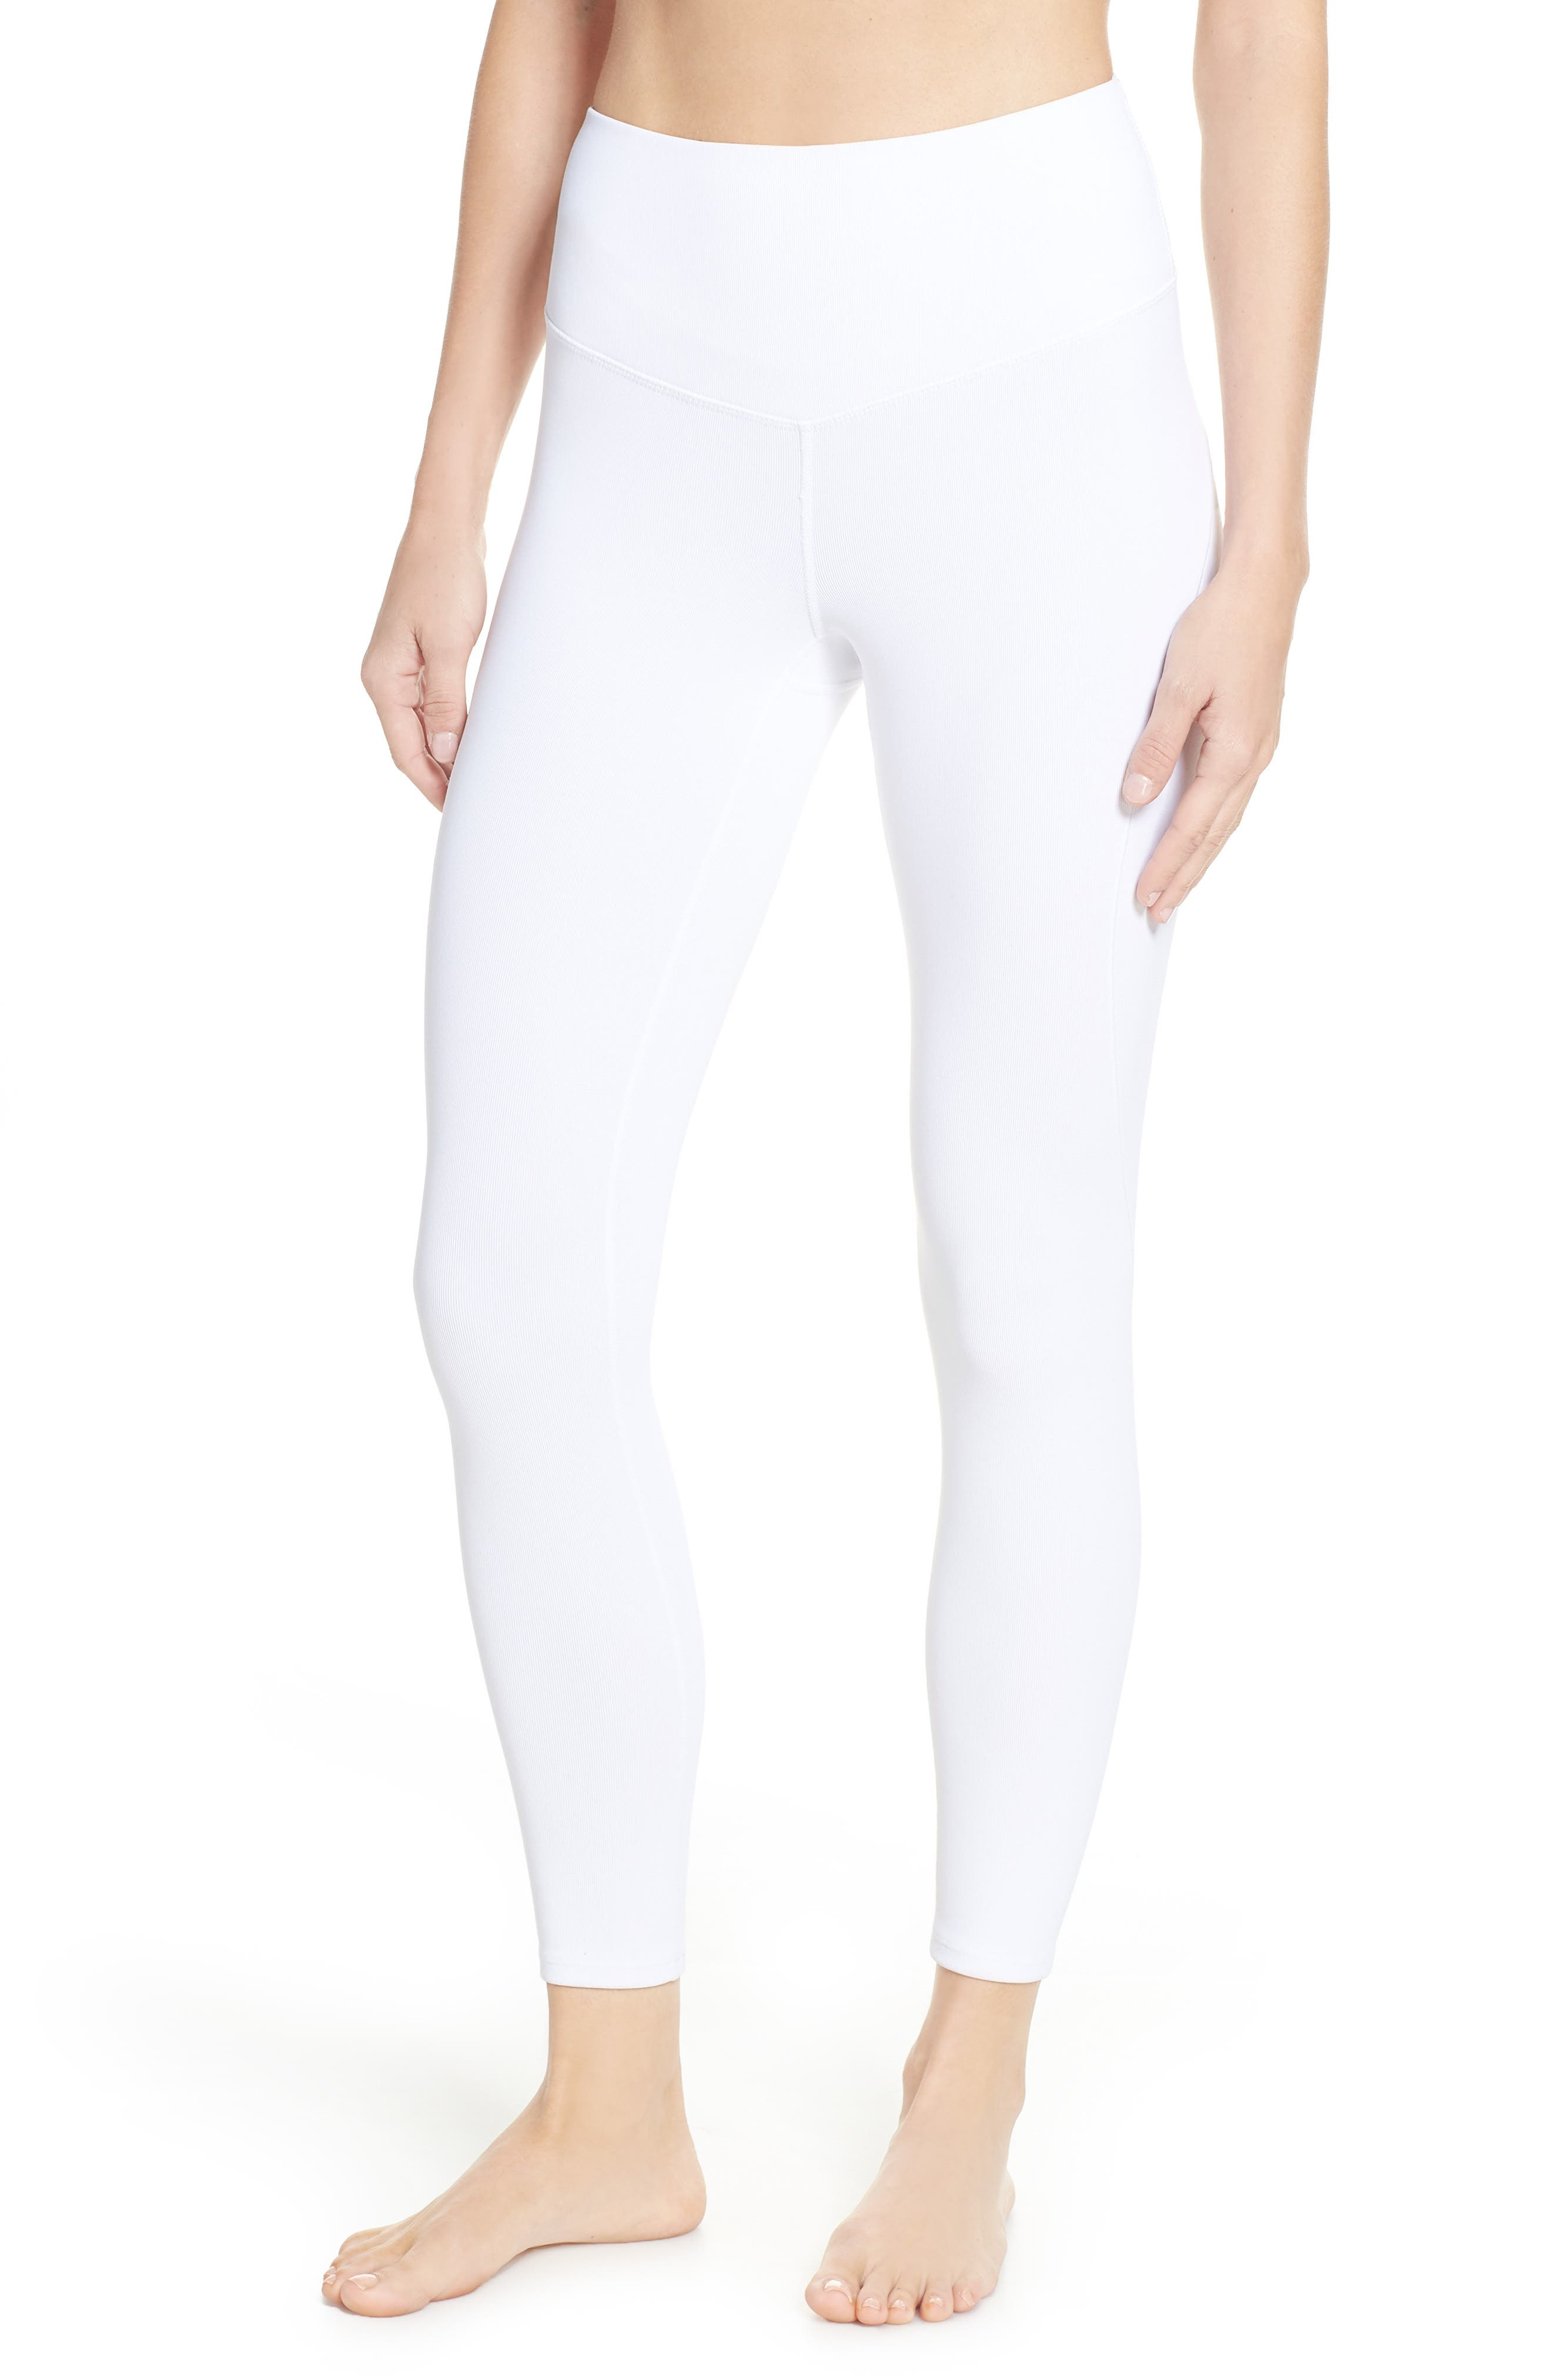 Free People FP Movement Formation High Waist Ankle Leggings,                             Main thumbnail 1, color,                             WHITE